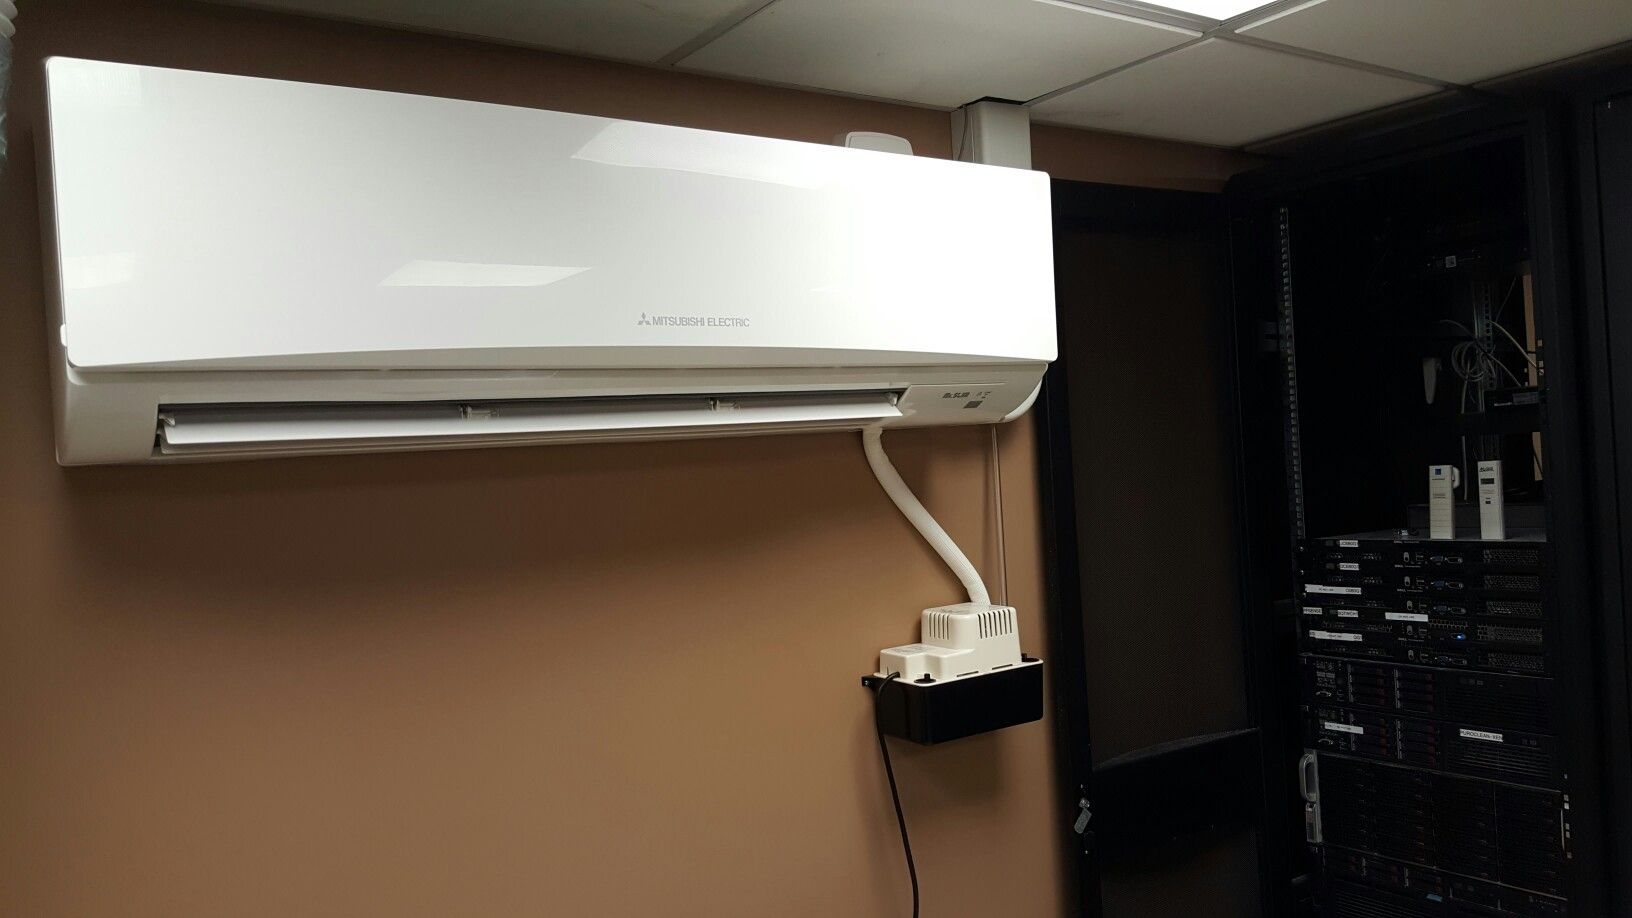 Mitsubishi Ductless Mini Split Specialists In East Dundee Il Server Room Heating And Air Conditioning Home Repair